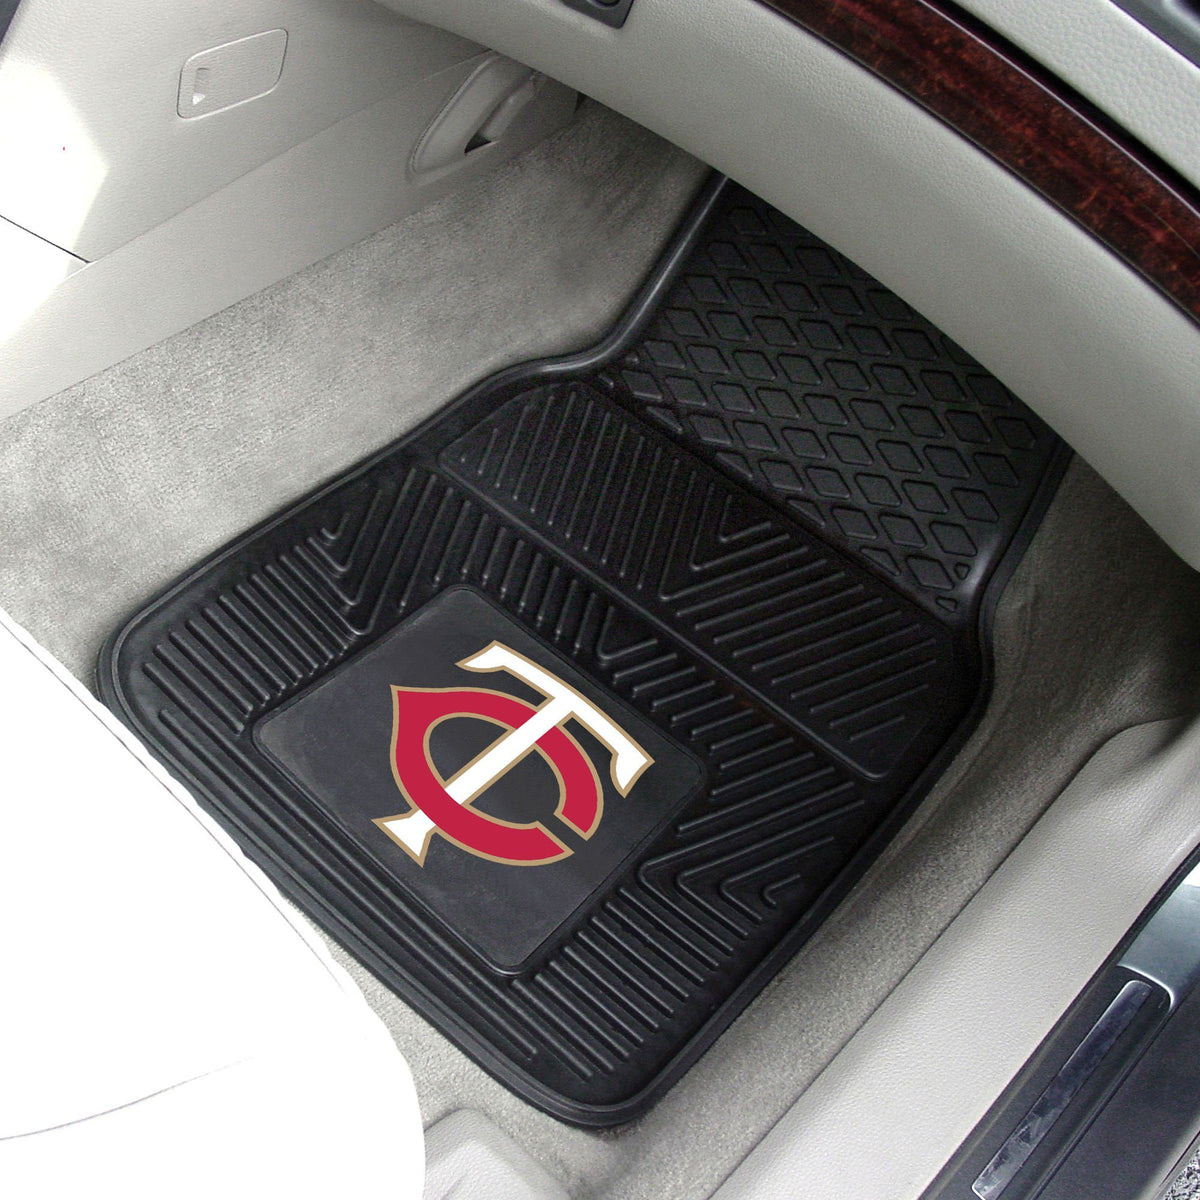 MLB - Vinyl Car Mat, 2-Piece Set MLB Mats, Front Car Mats, 2-pc Vinyl Car Mat Set, MLB, Auto Fan Mats Minnesota Twins